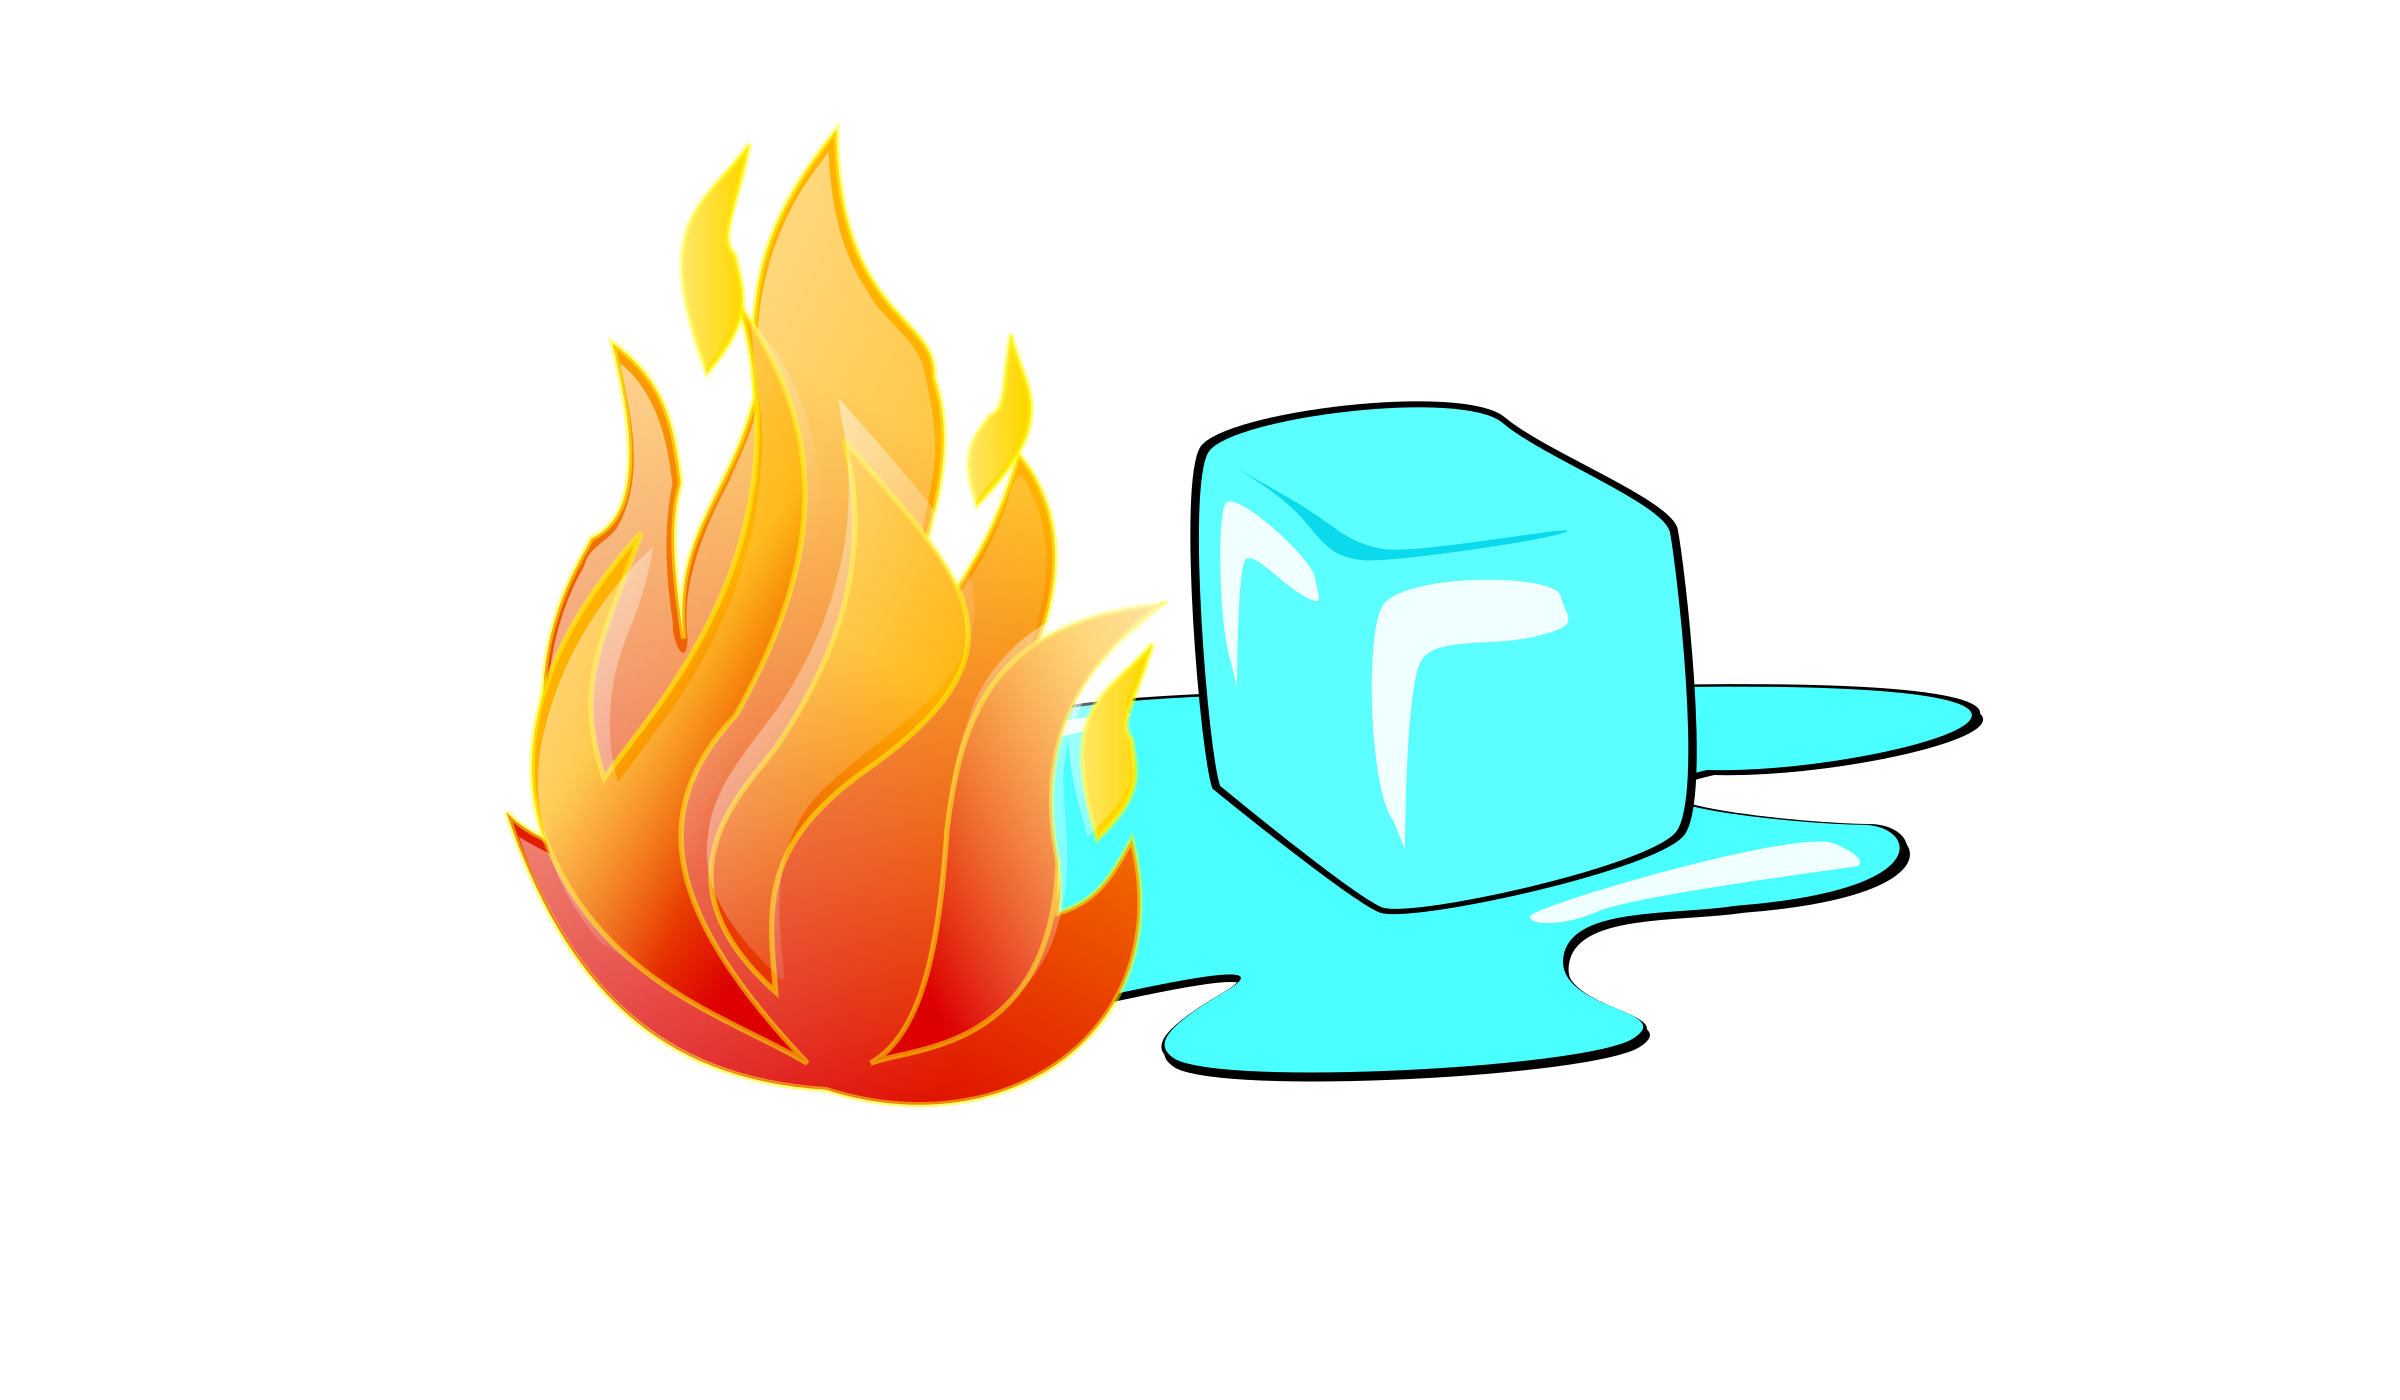 Fire and. Ice clipart graphic library